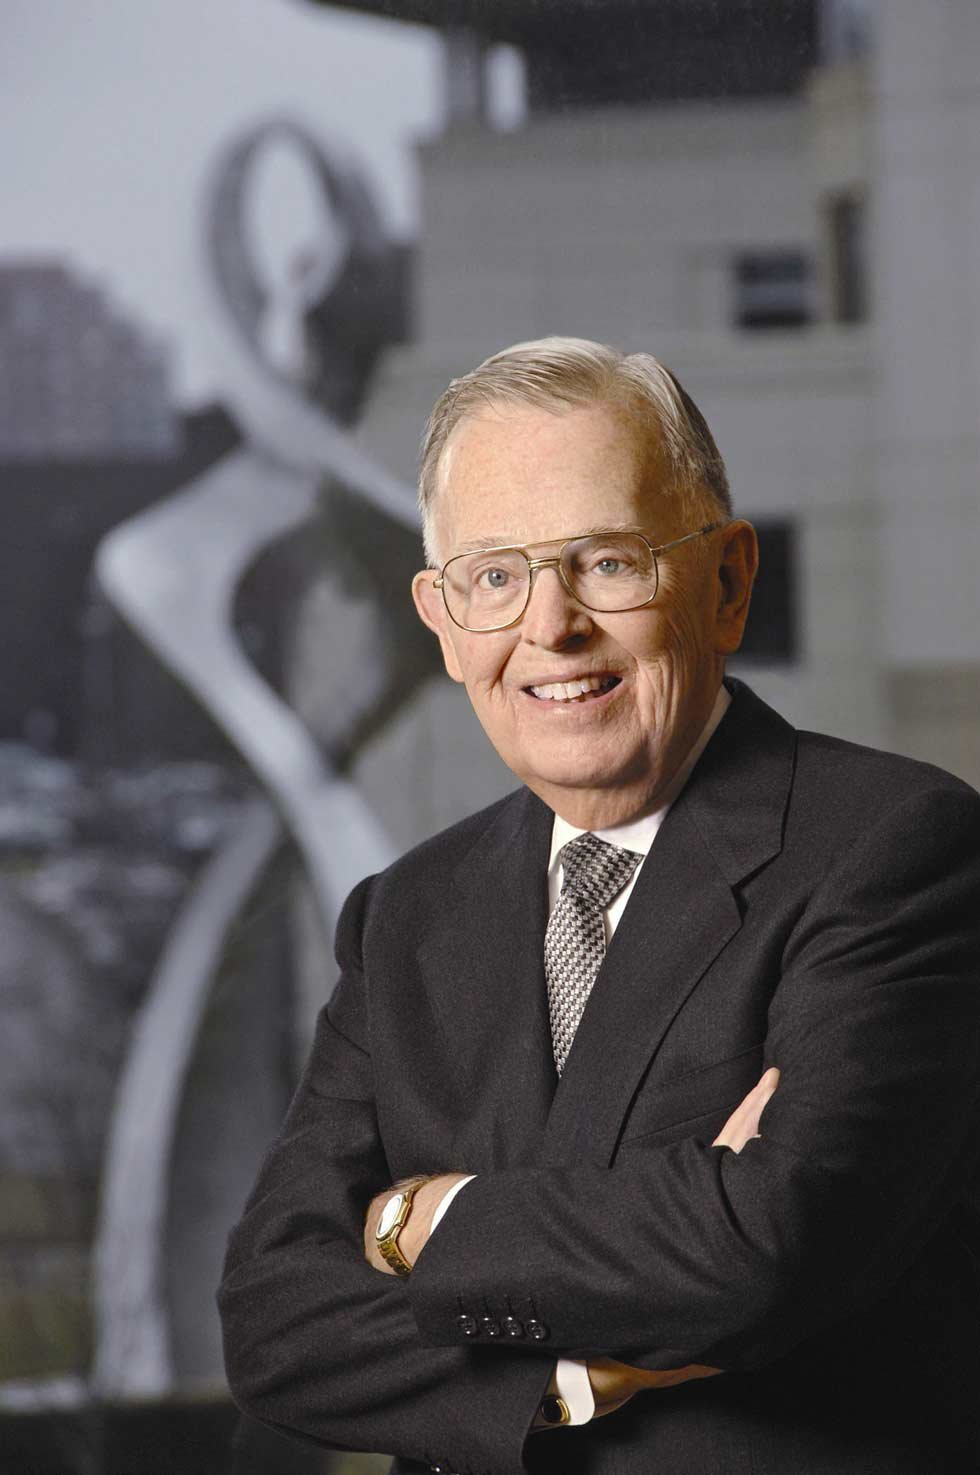 Jim Stowers Jr., the billionaire founder of one of the nation's leading investment management firms who gave away most of his fortune to fight disease, has died. He was 90.